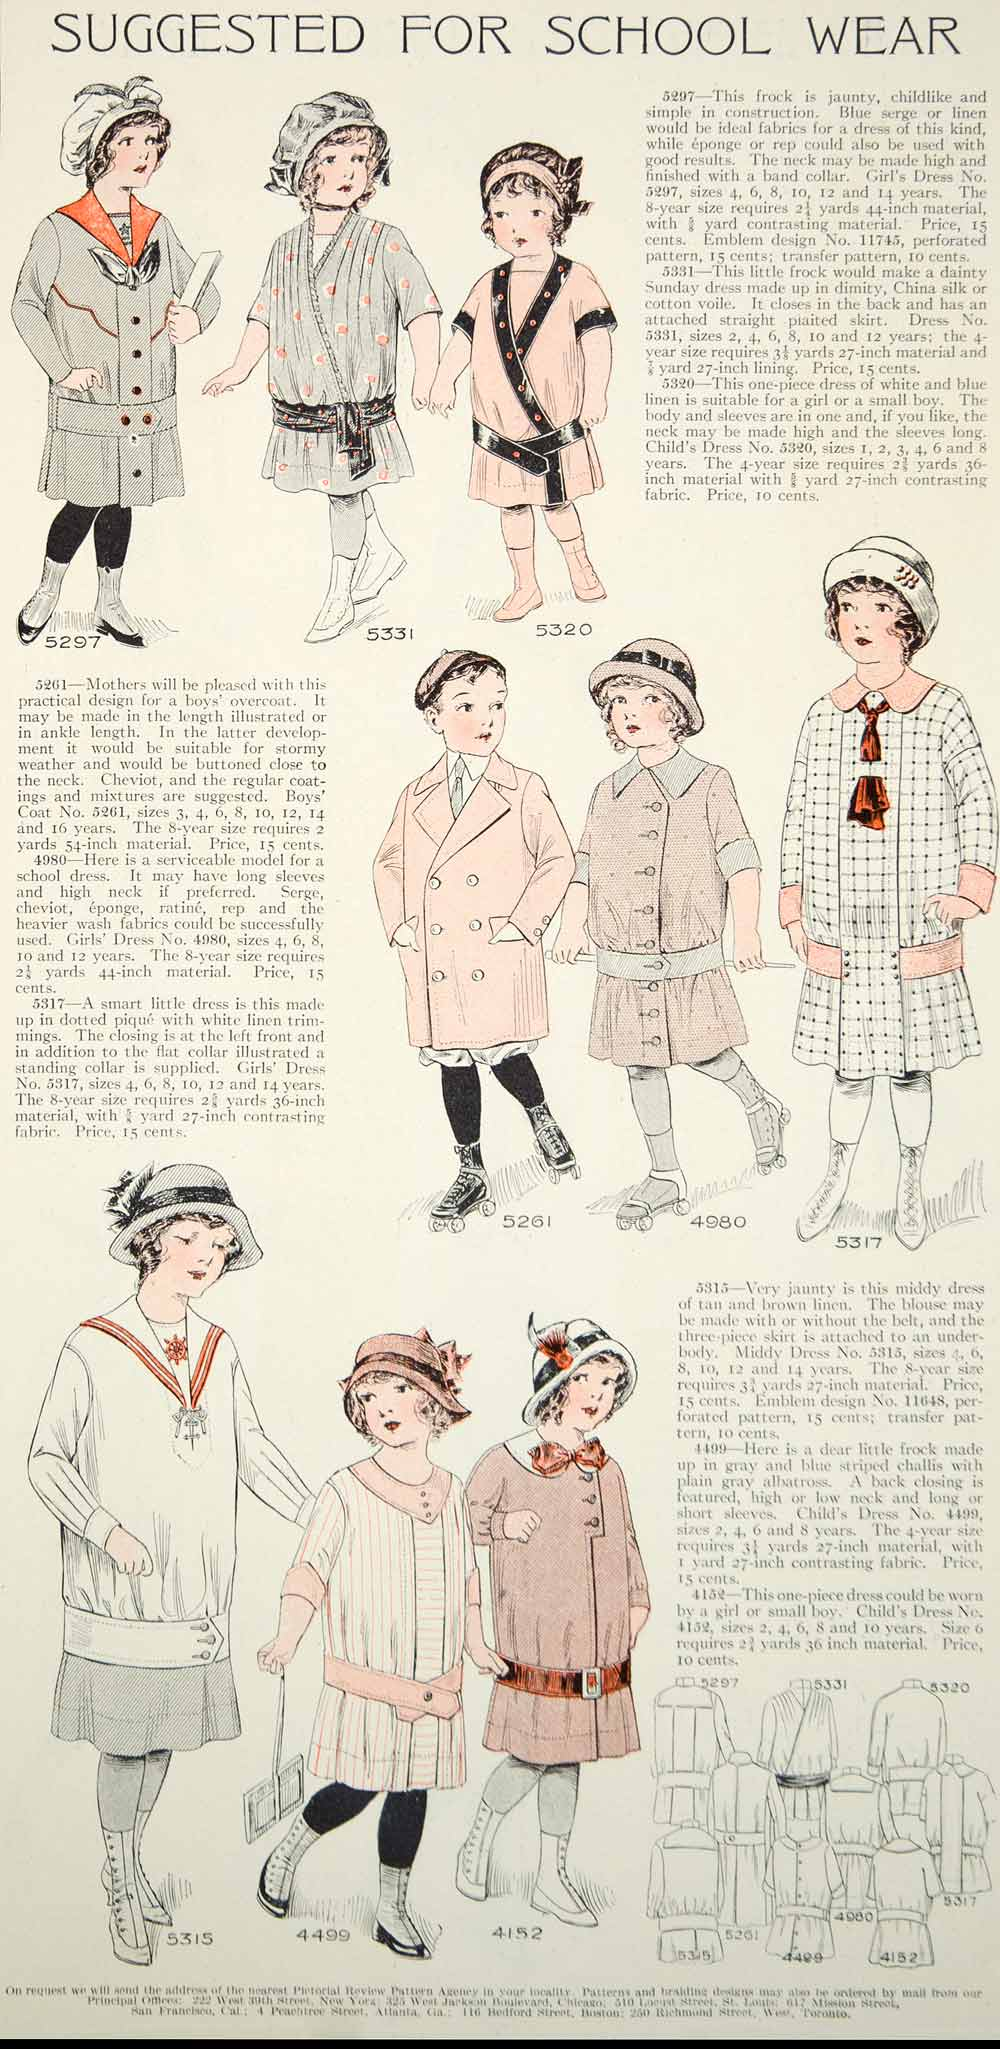 1913 Color Print Edwardian Fashion Illustrations Children School Dress Girl Boy